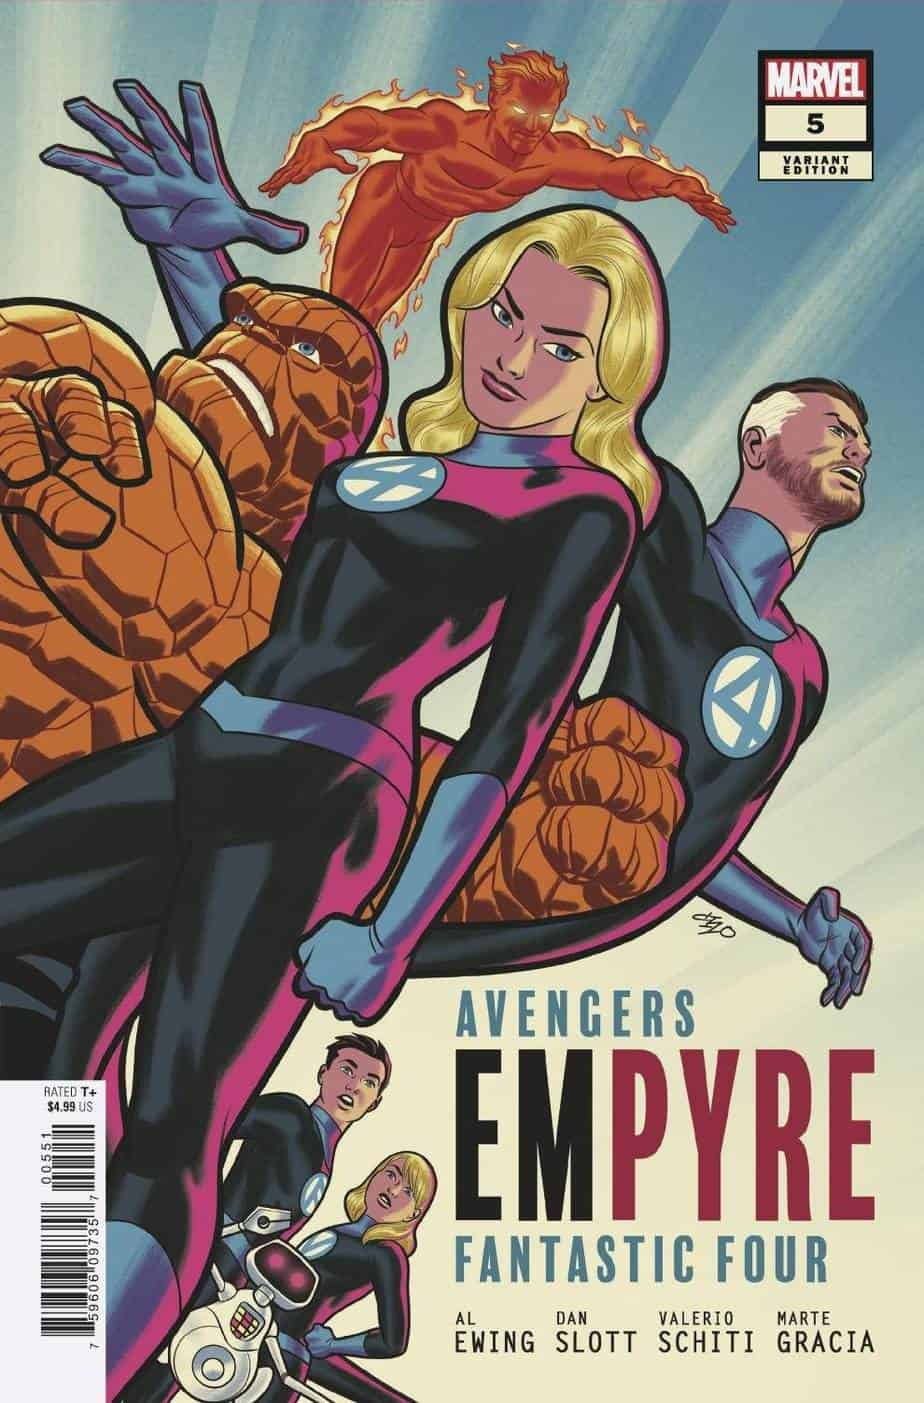 EMPYRE #5 - Cover C